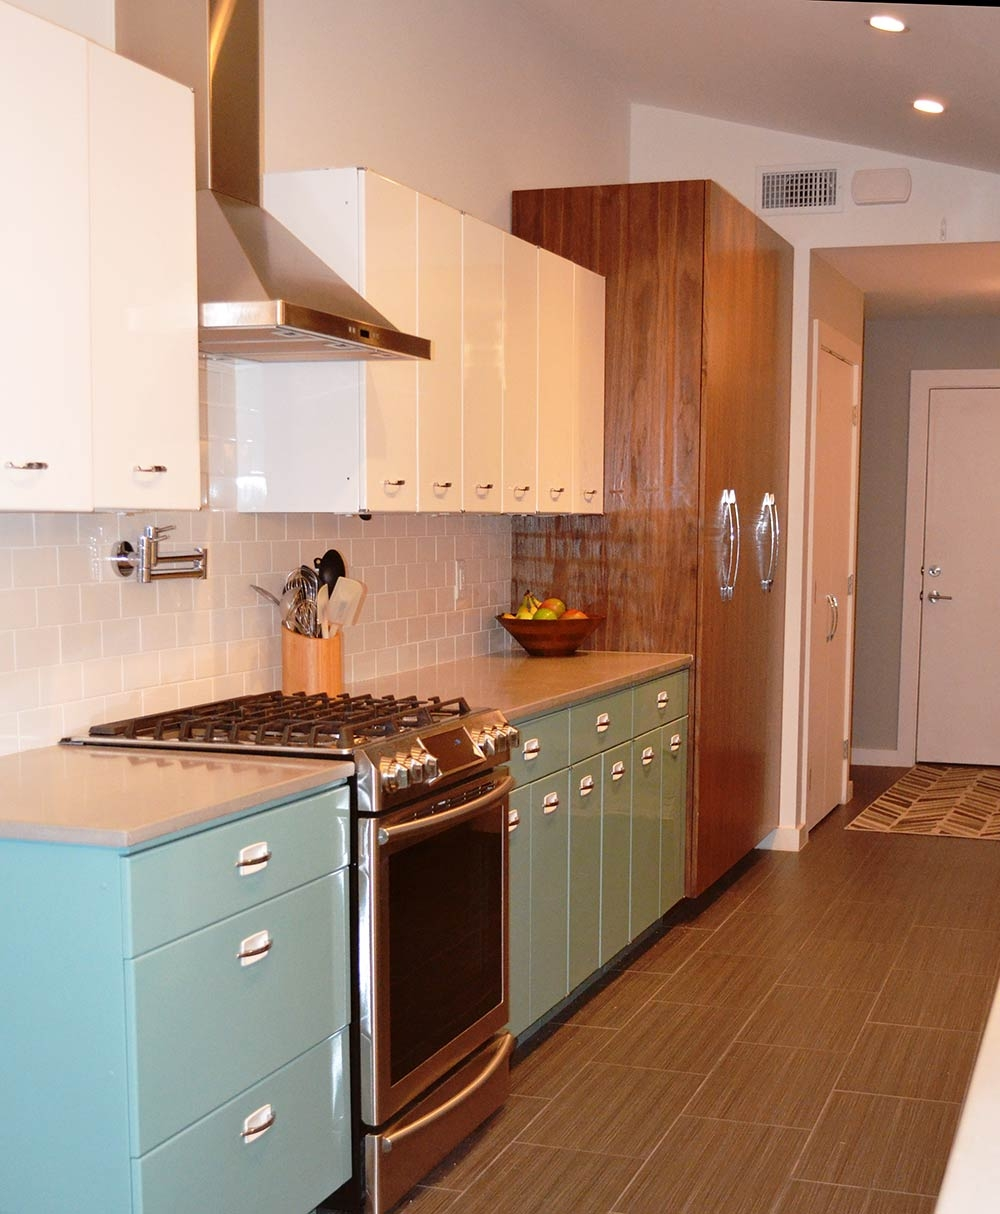 1950s Kitchen Cabinets Remodel